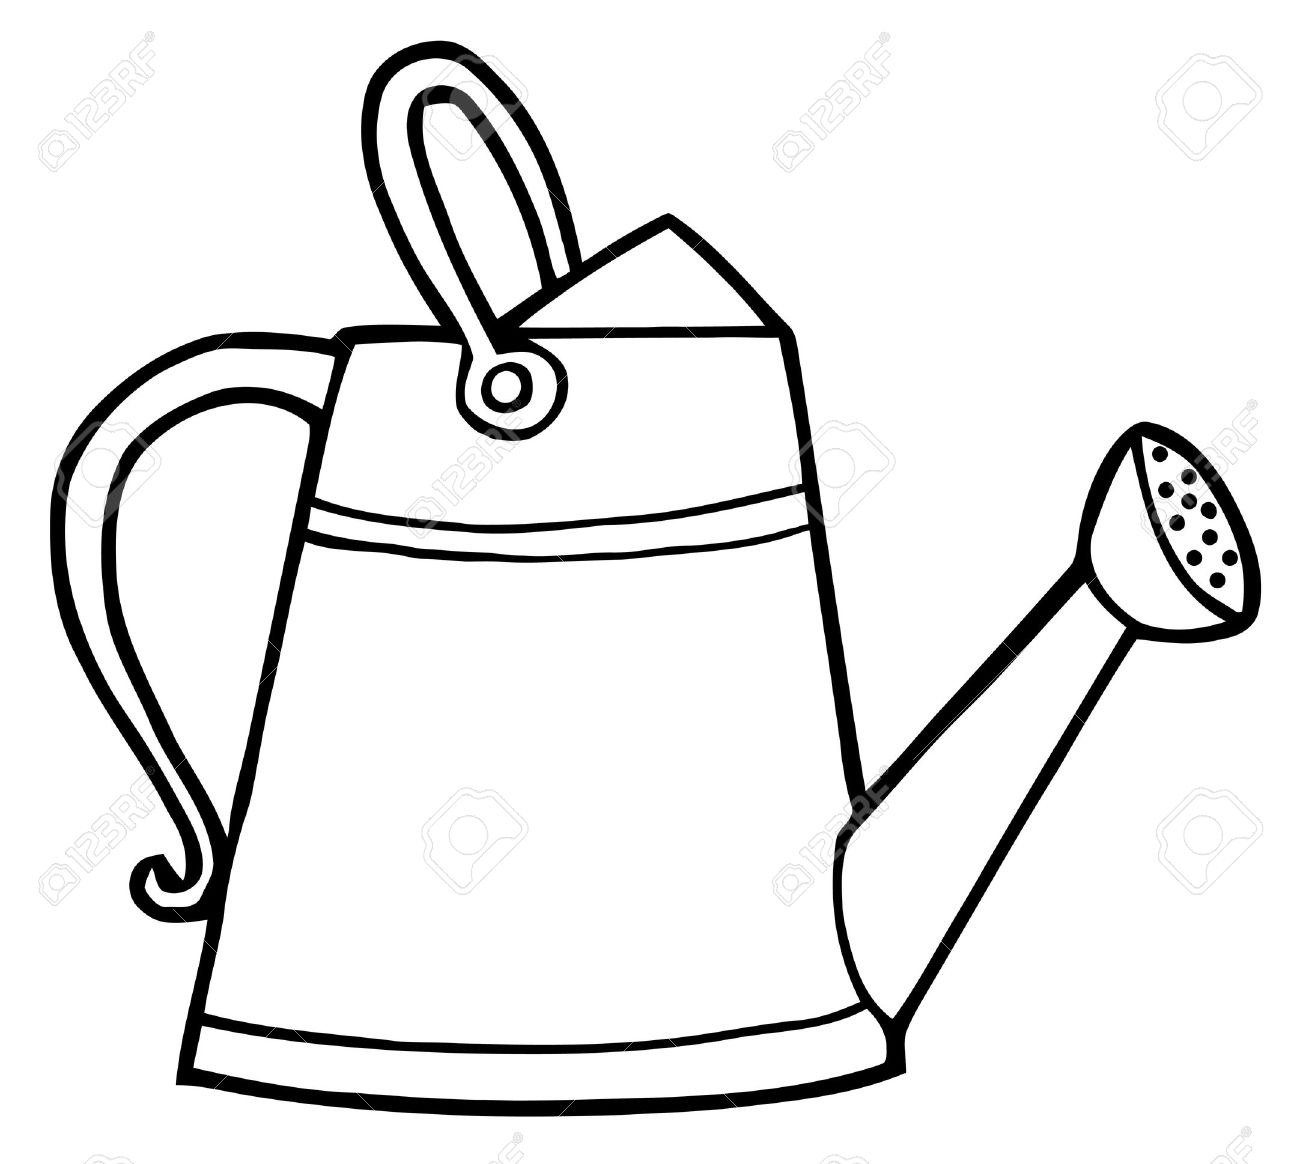 coloring page outline of a gardening watering can royalty free rh 123rf com watering can clipart free watering can clip art black white